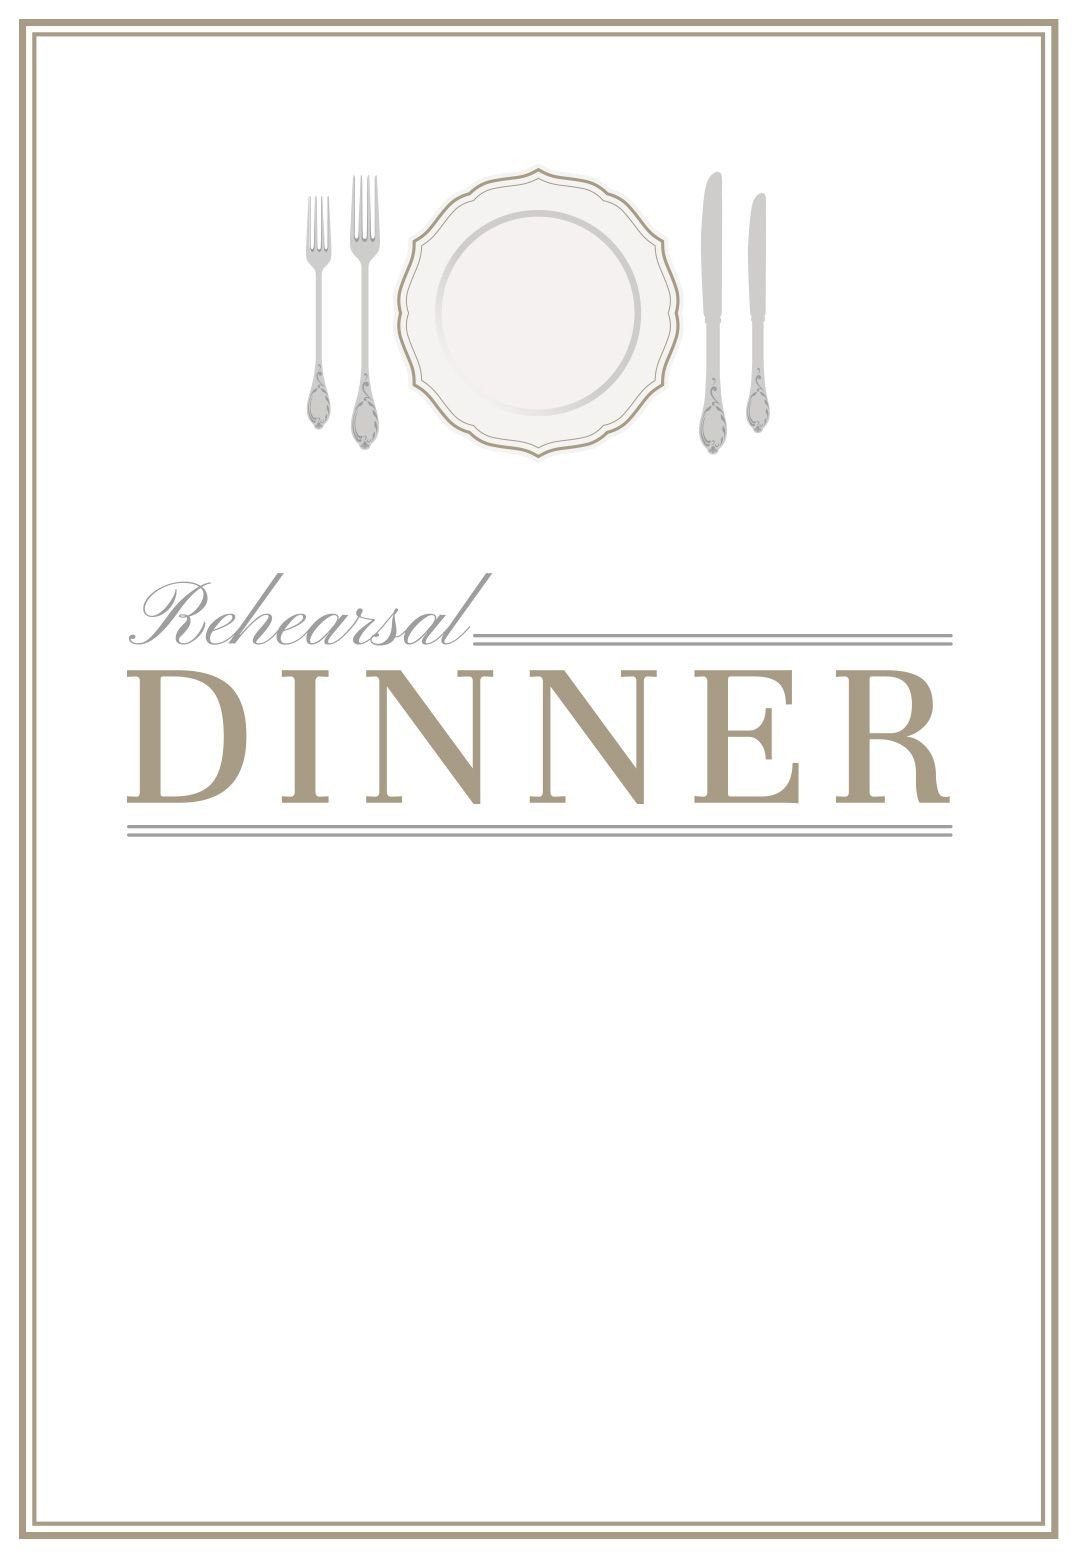 Dinner Party Invitation Templates Elegant Setting Free Printable Rehearsal Dinner Party